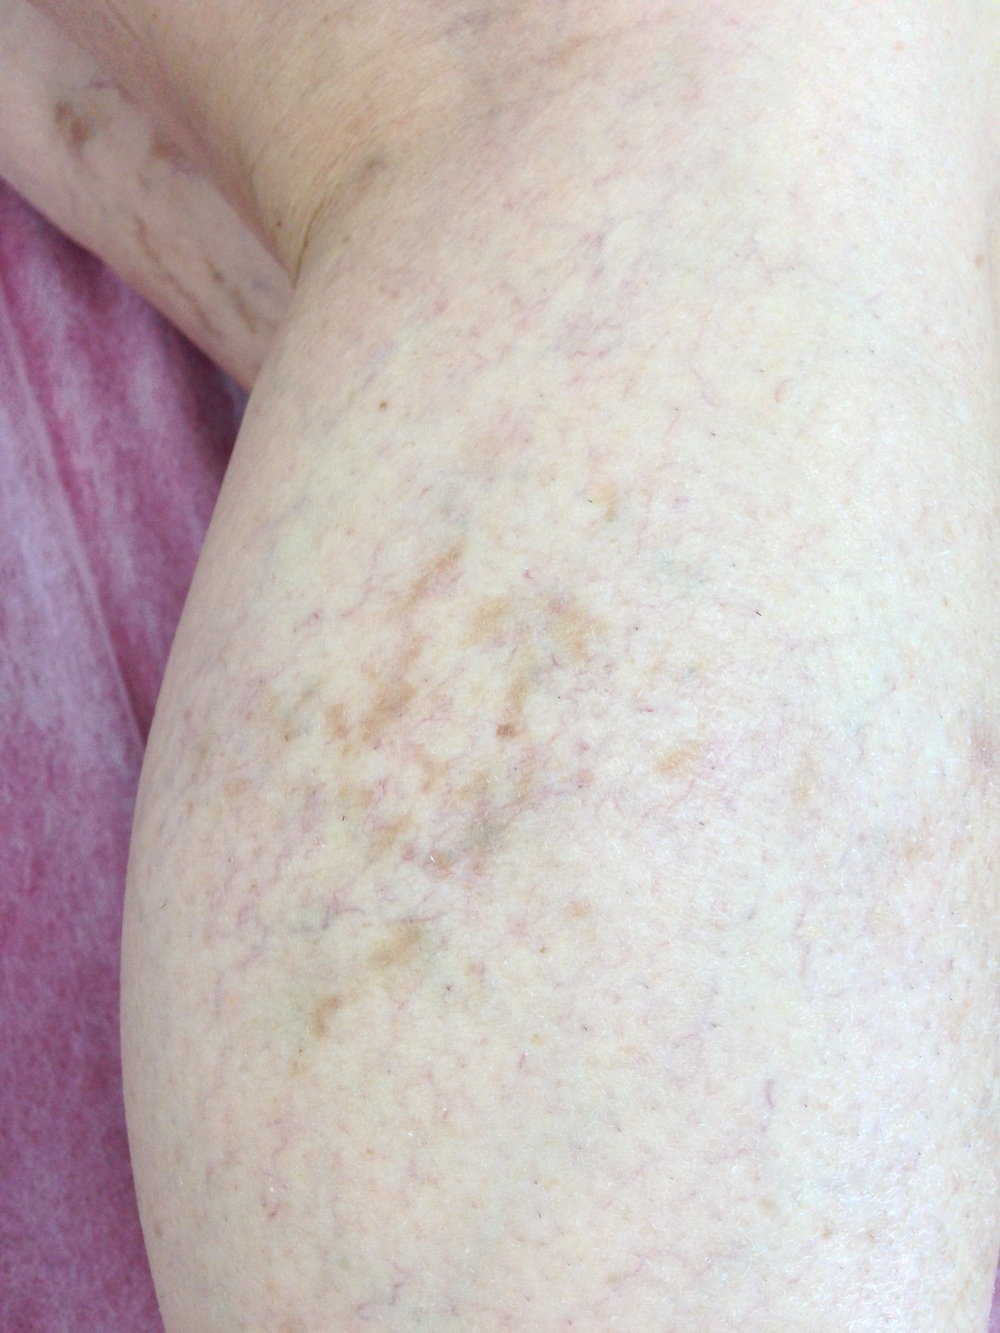 Treatment: Bilateral Sclerotherapy. Results at 3 months.